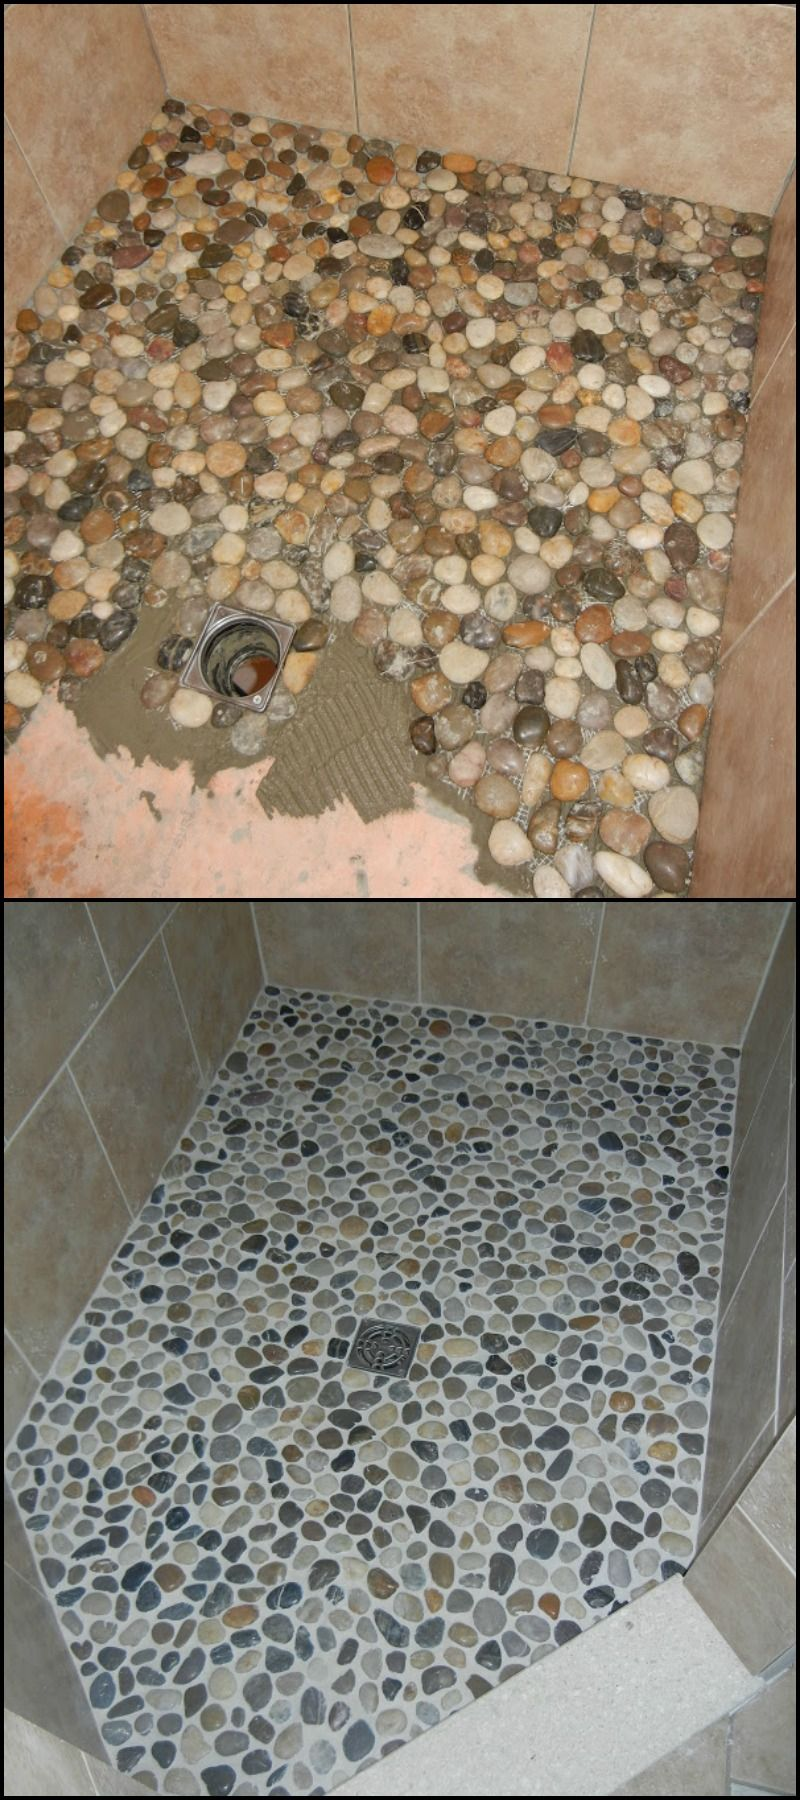 Want A Refreshing New Look To Your Bathroom How About This Pebble Shower Floor Idea It S Not Only Beautiful It S Ideias Para Casas De Banho Diy Casa Casas